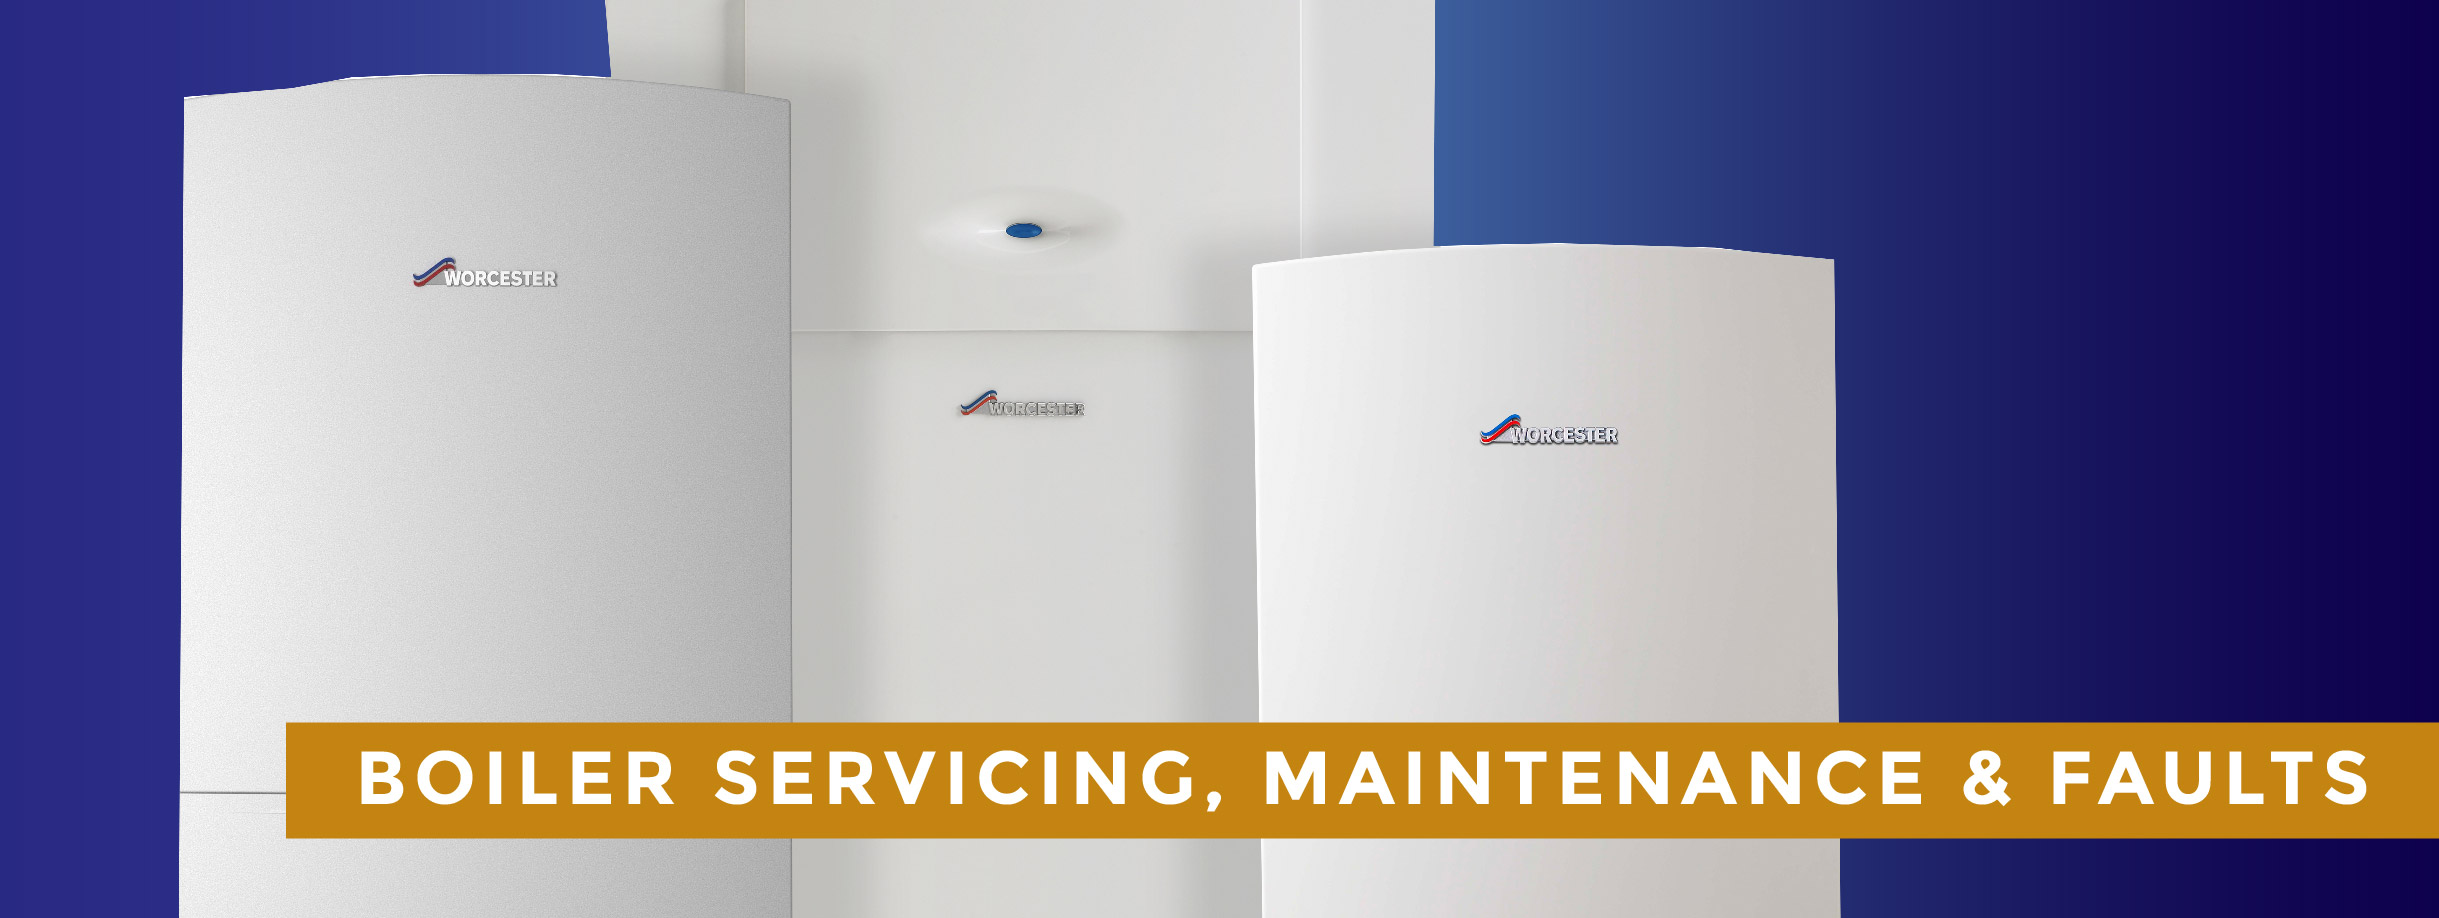 Boiler Servicing, Maintenance & Faults